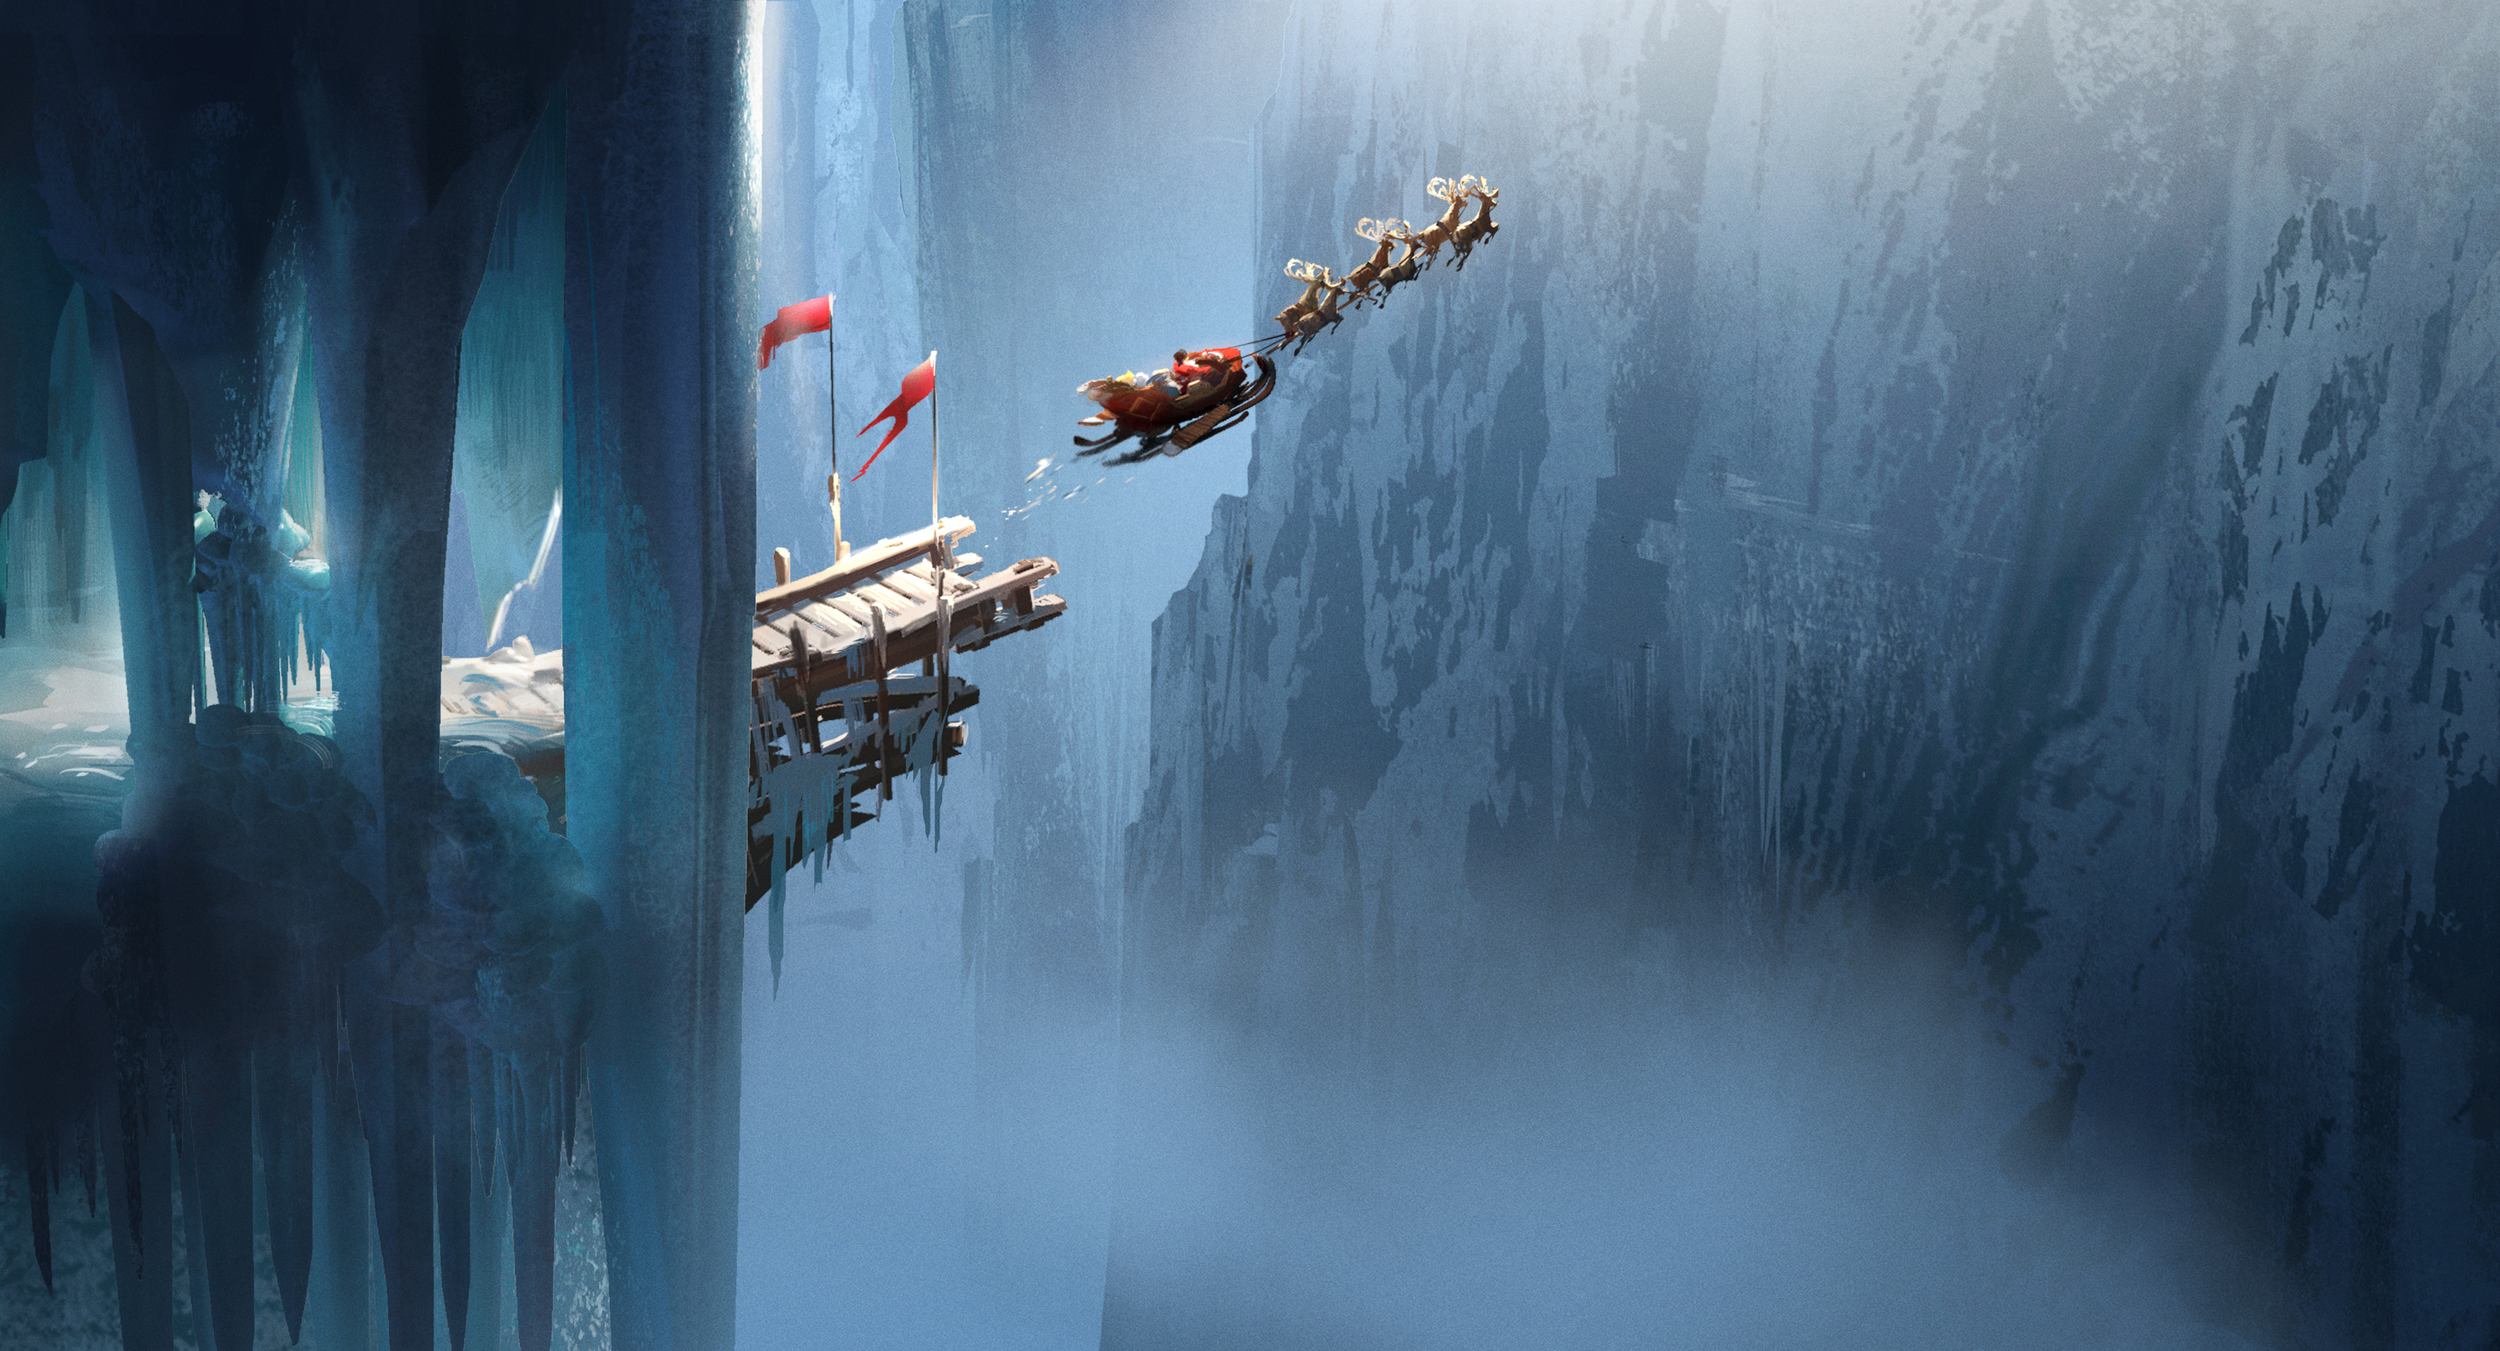 Rise of The Guardians, DWA Concept painting - North pole location